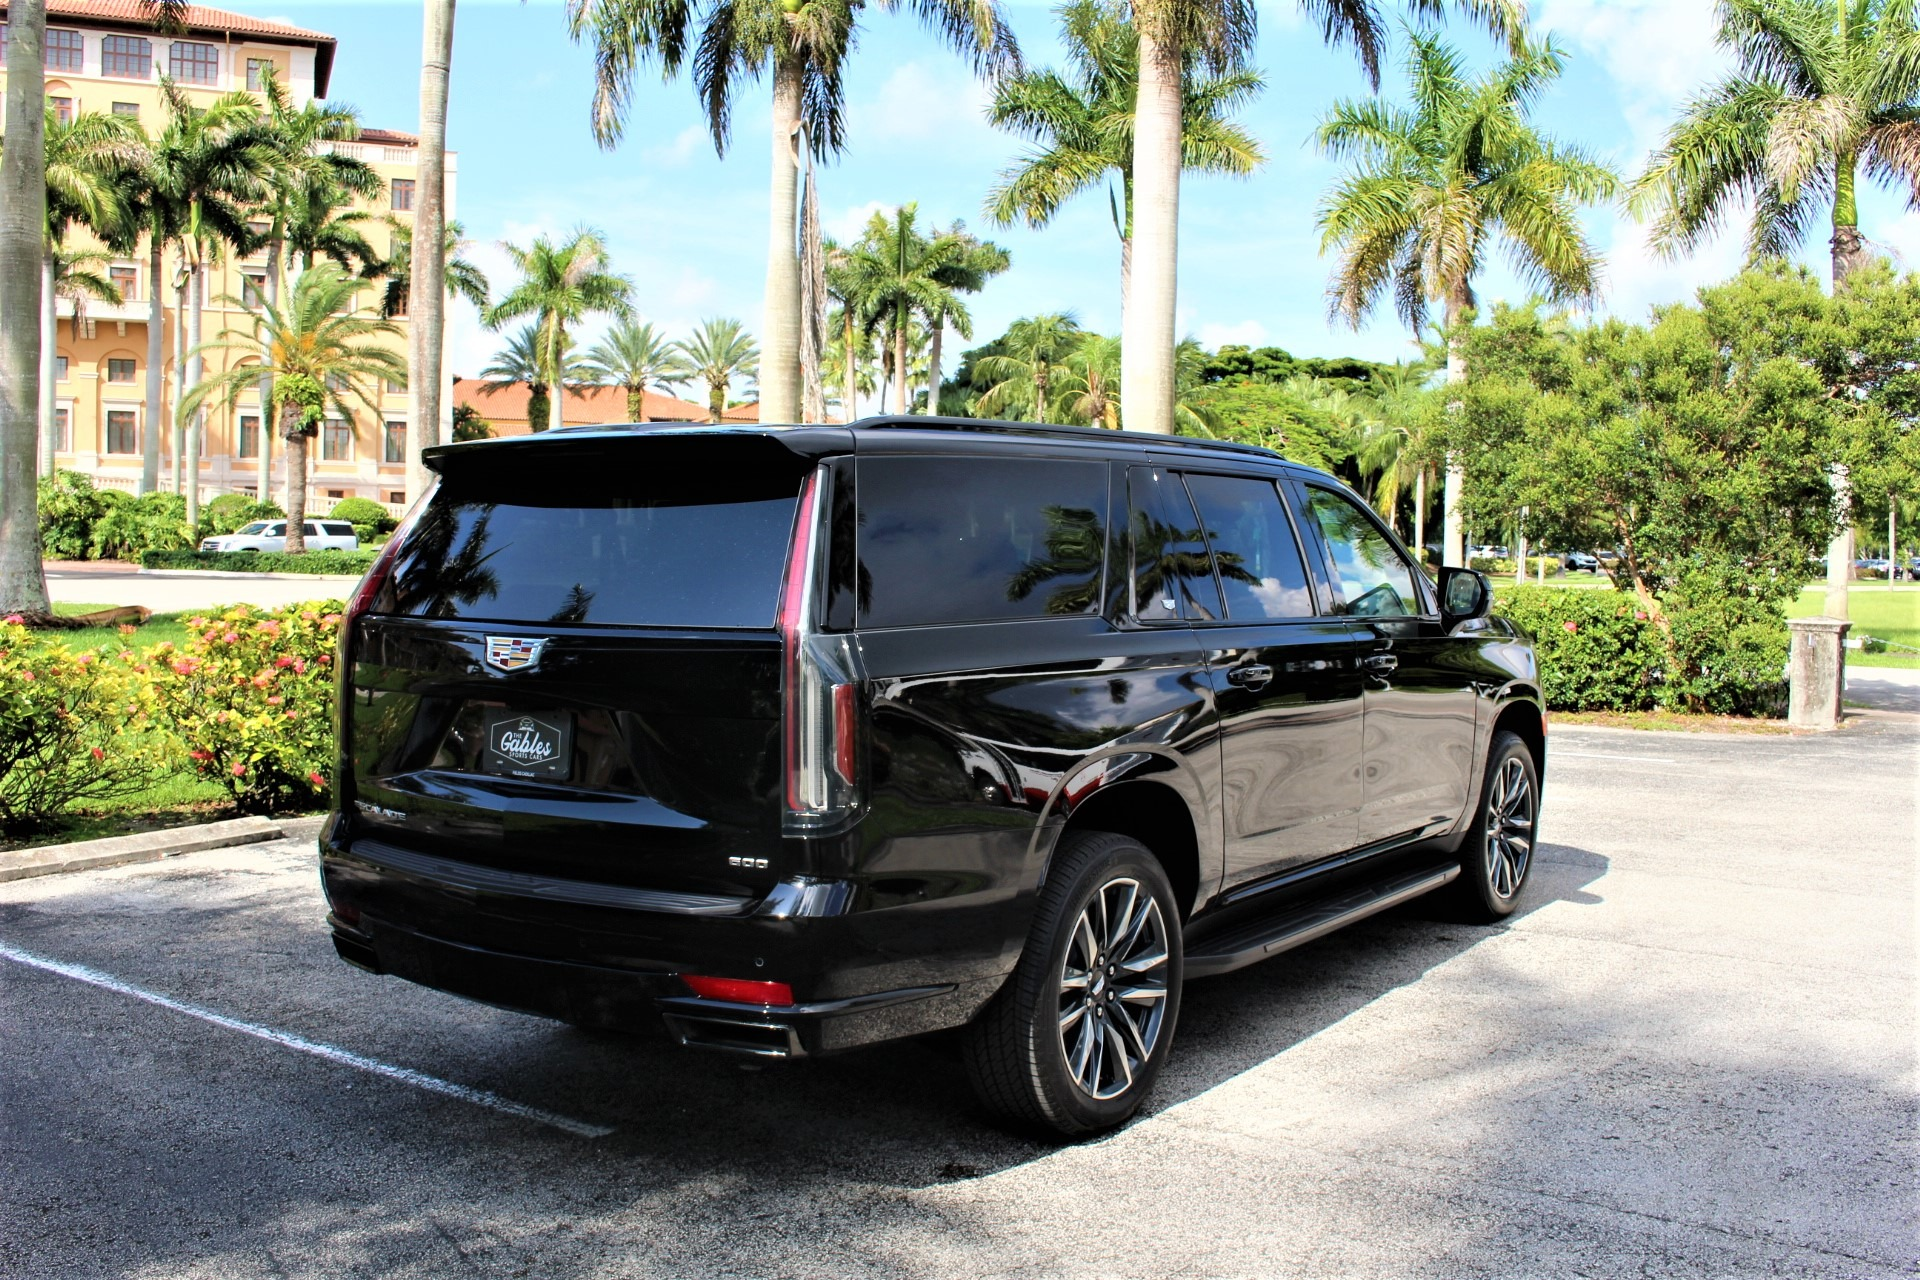 Used 2021 Cadillac Escalade ESV Sport for sale Sold at The Gables Sports Cars in Miami FL 33146 4